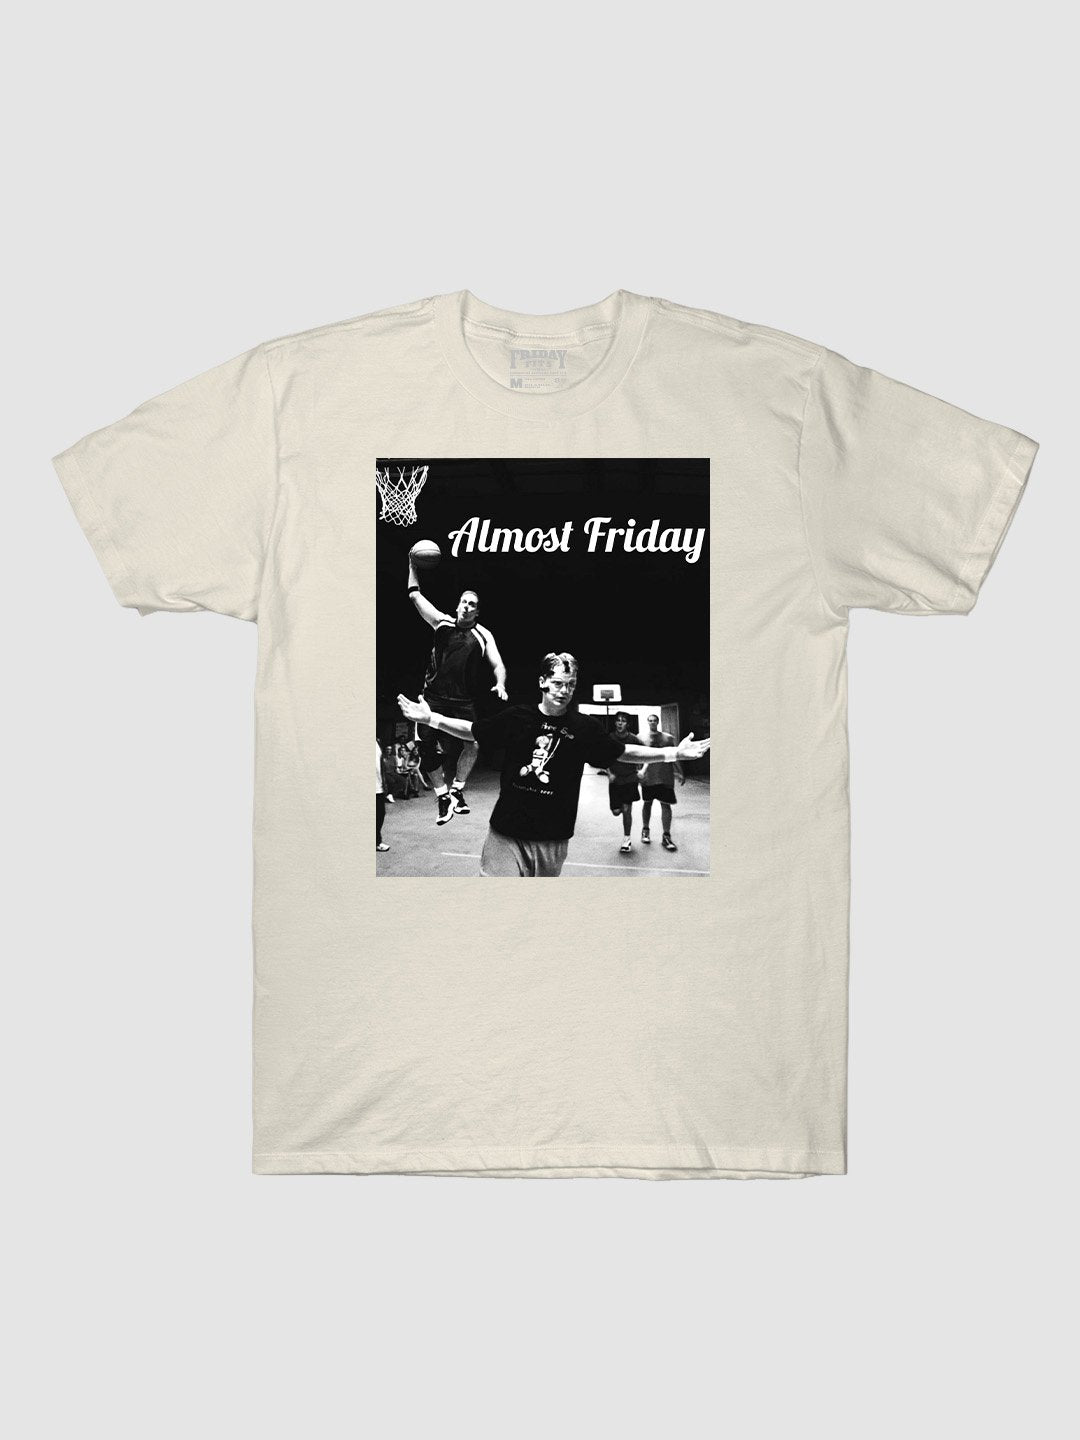 Almost Friday Oop T-Shirt